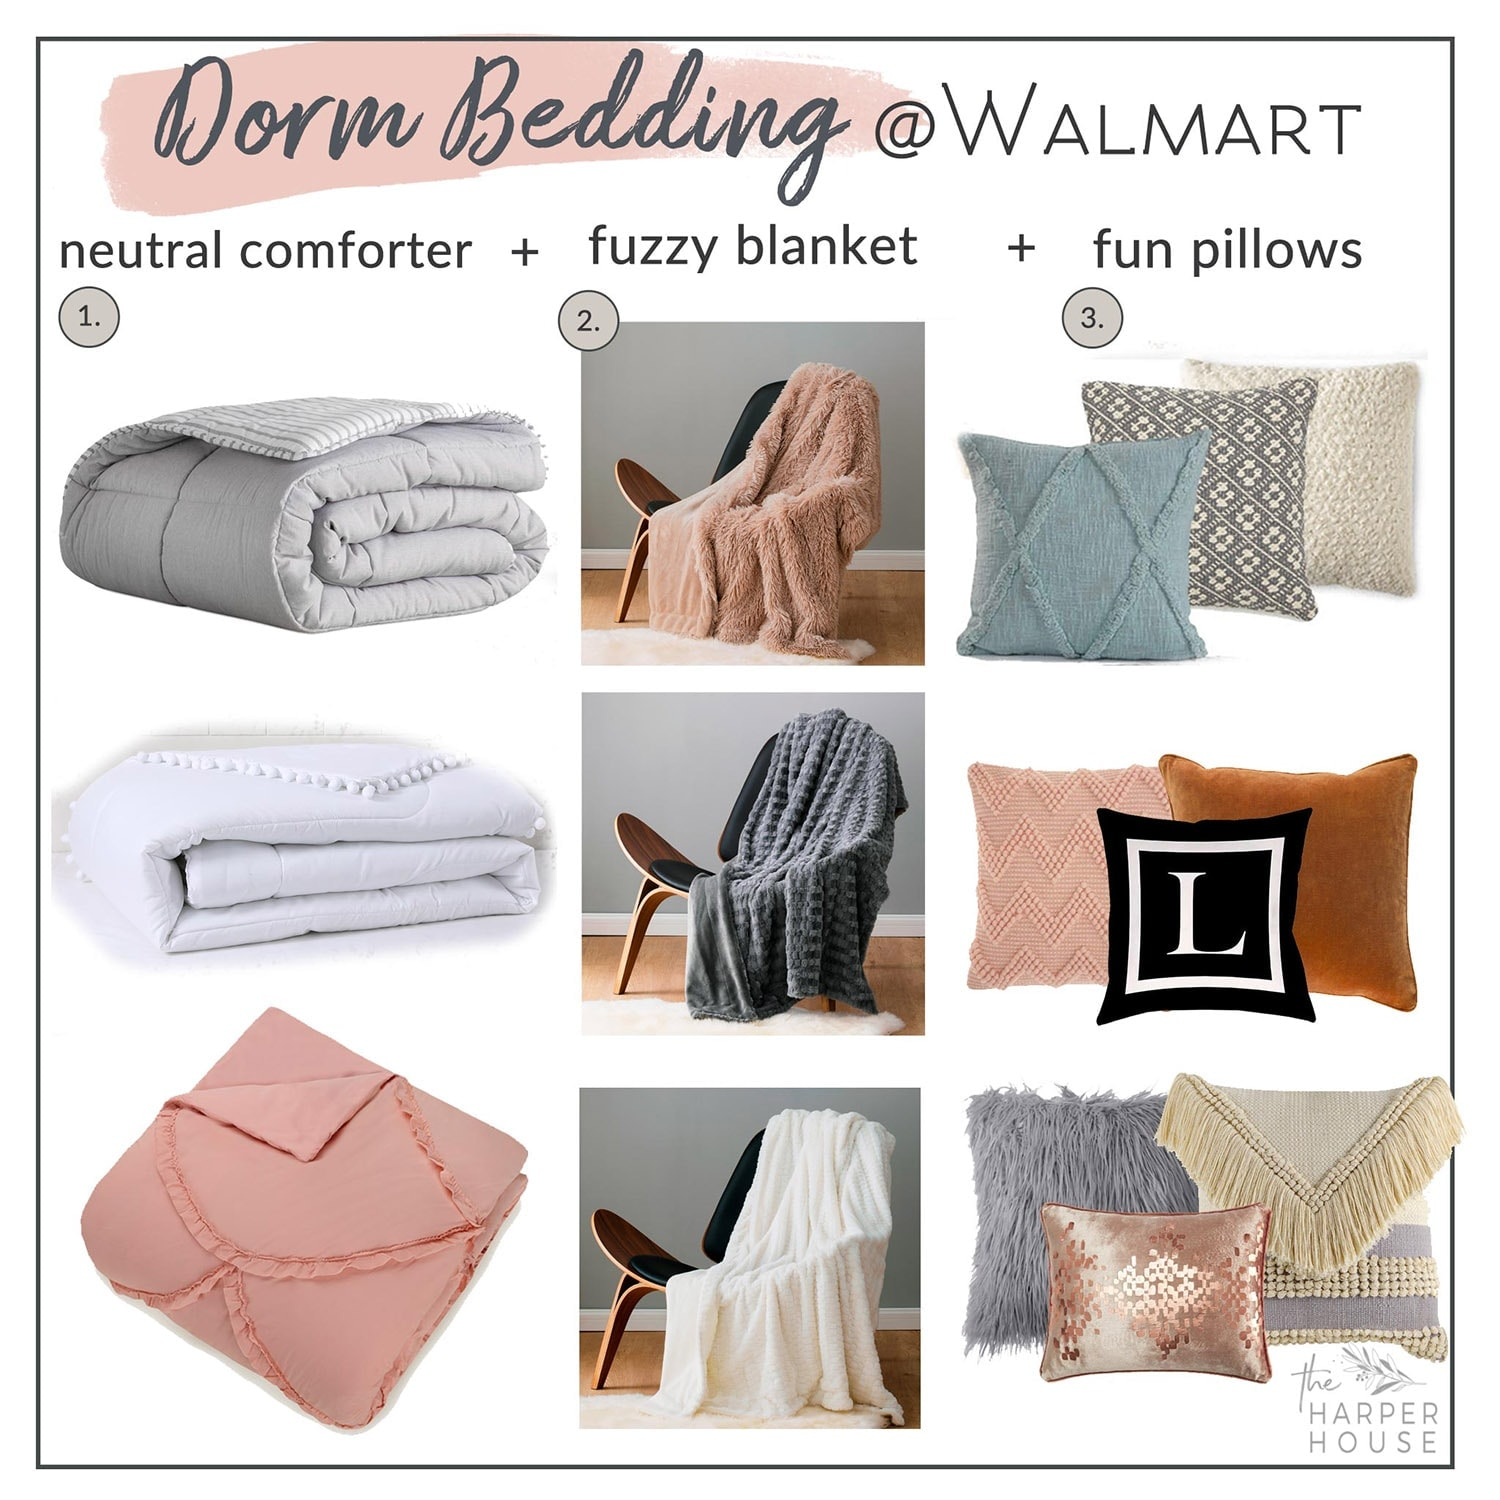 Create a boho coastal dorm room with this super affordable dorm bedding, blankets, and pillows from Walmart! #dorm #dormbedding #bohobedroom #dormroom